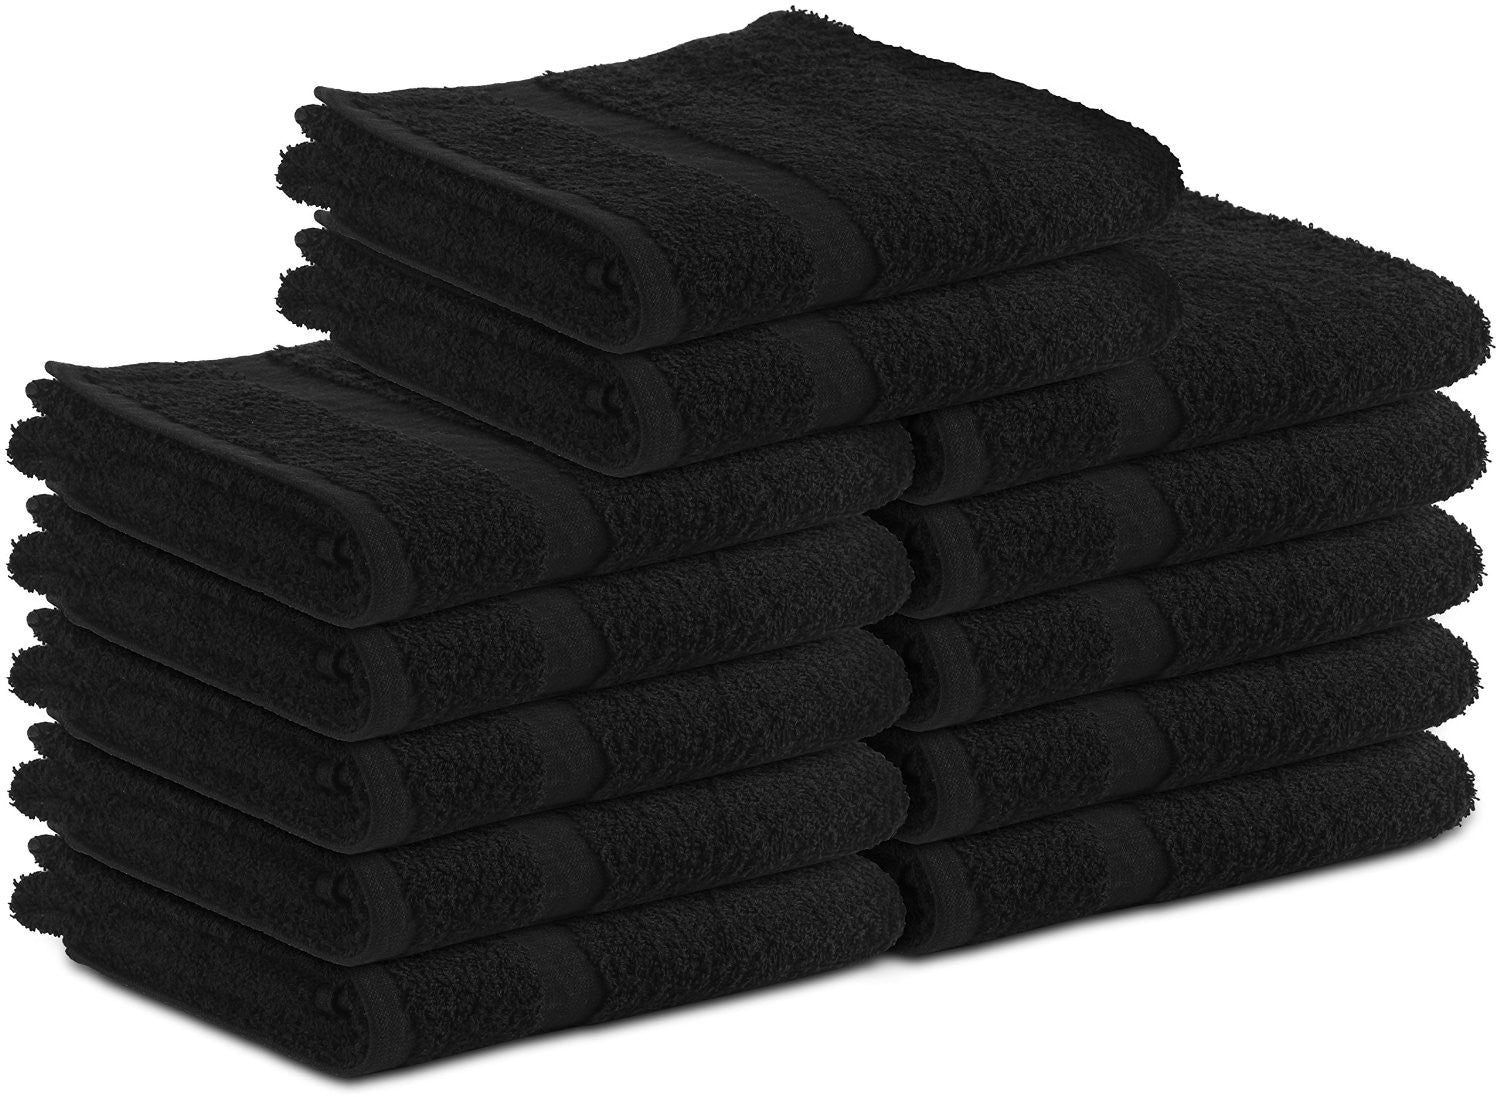 Cotton Salon Towels (Black-24 Pack)